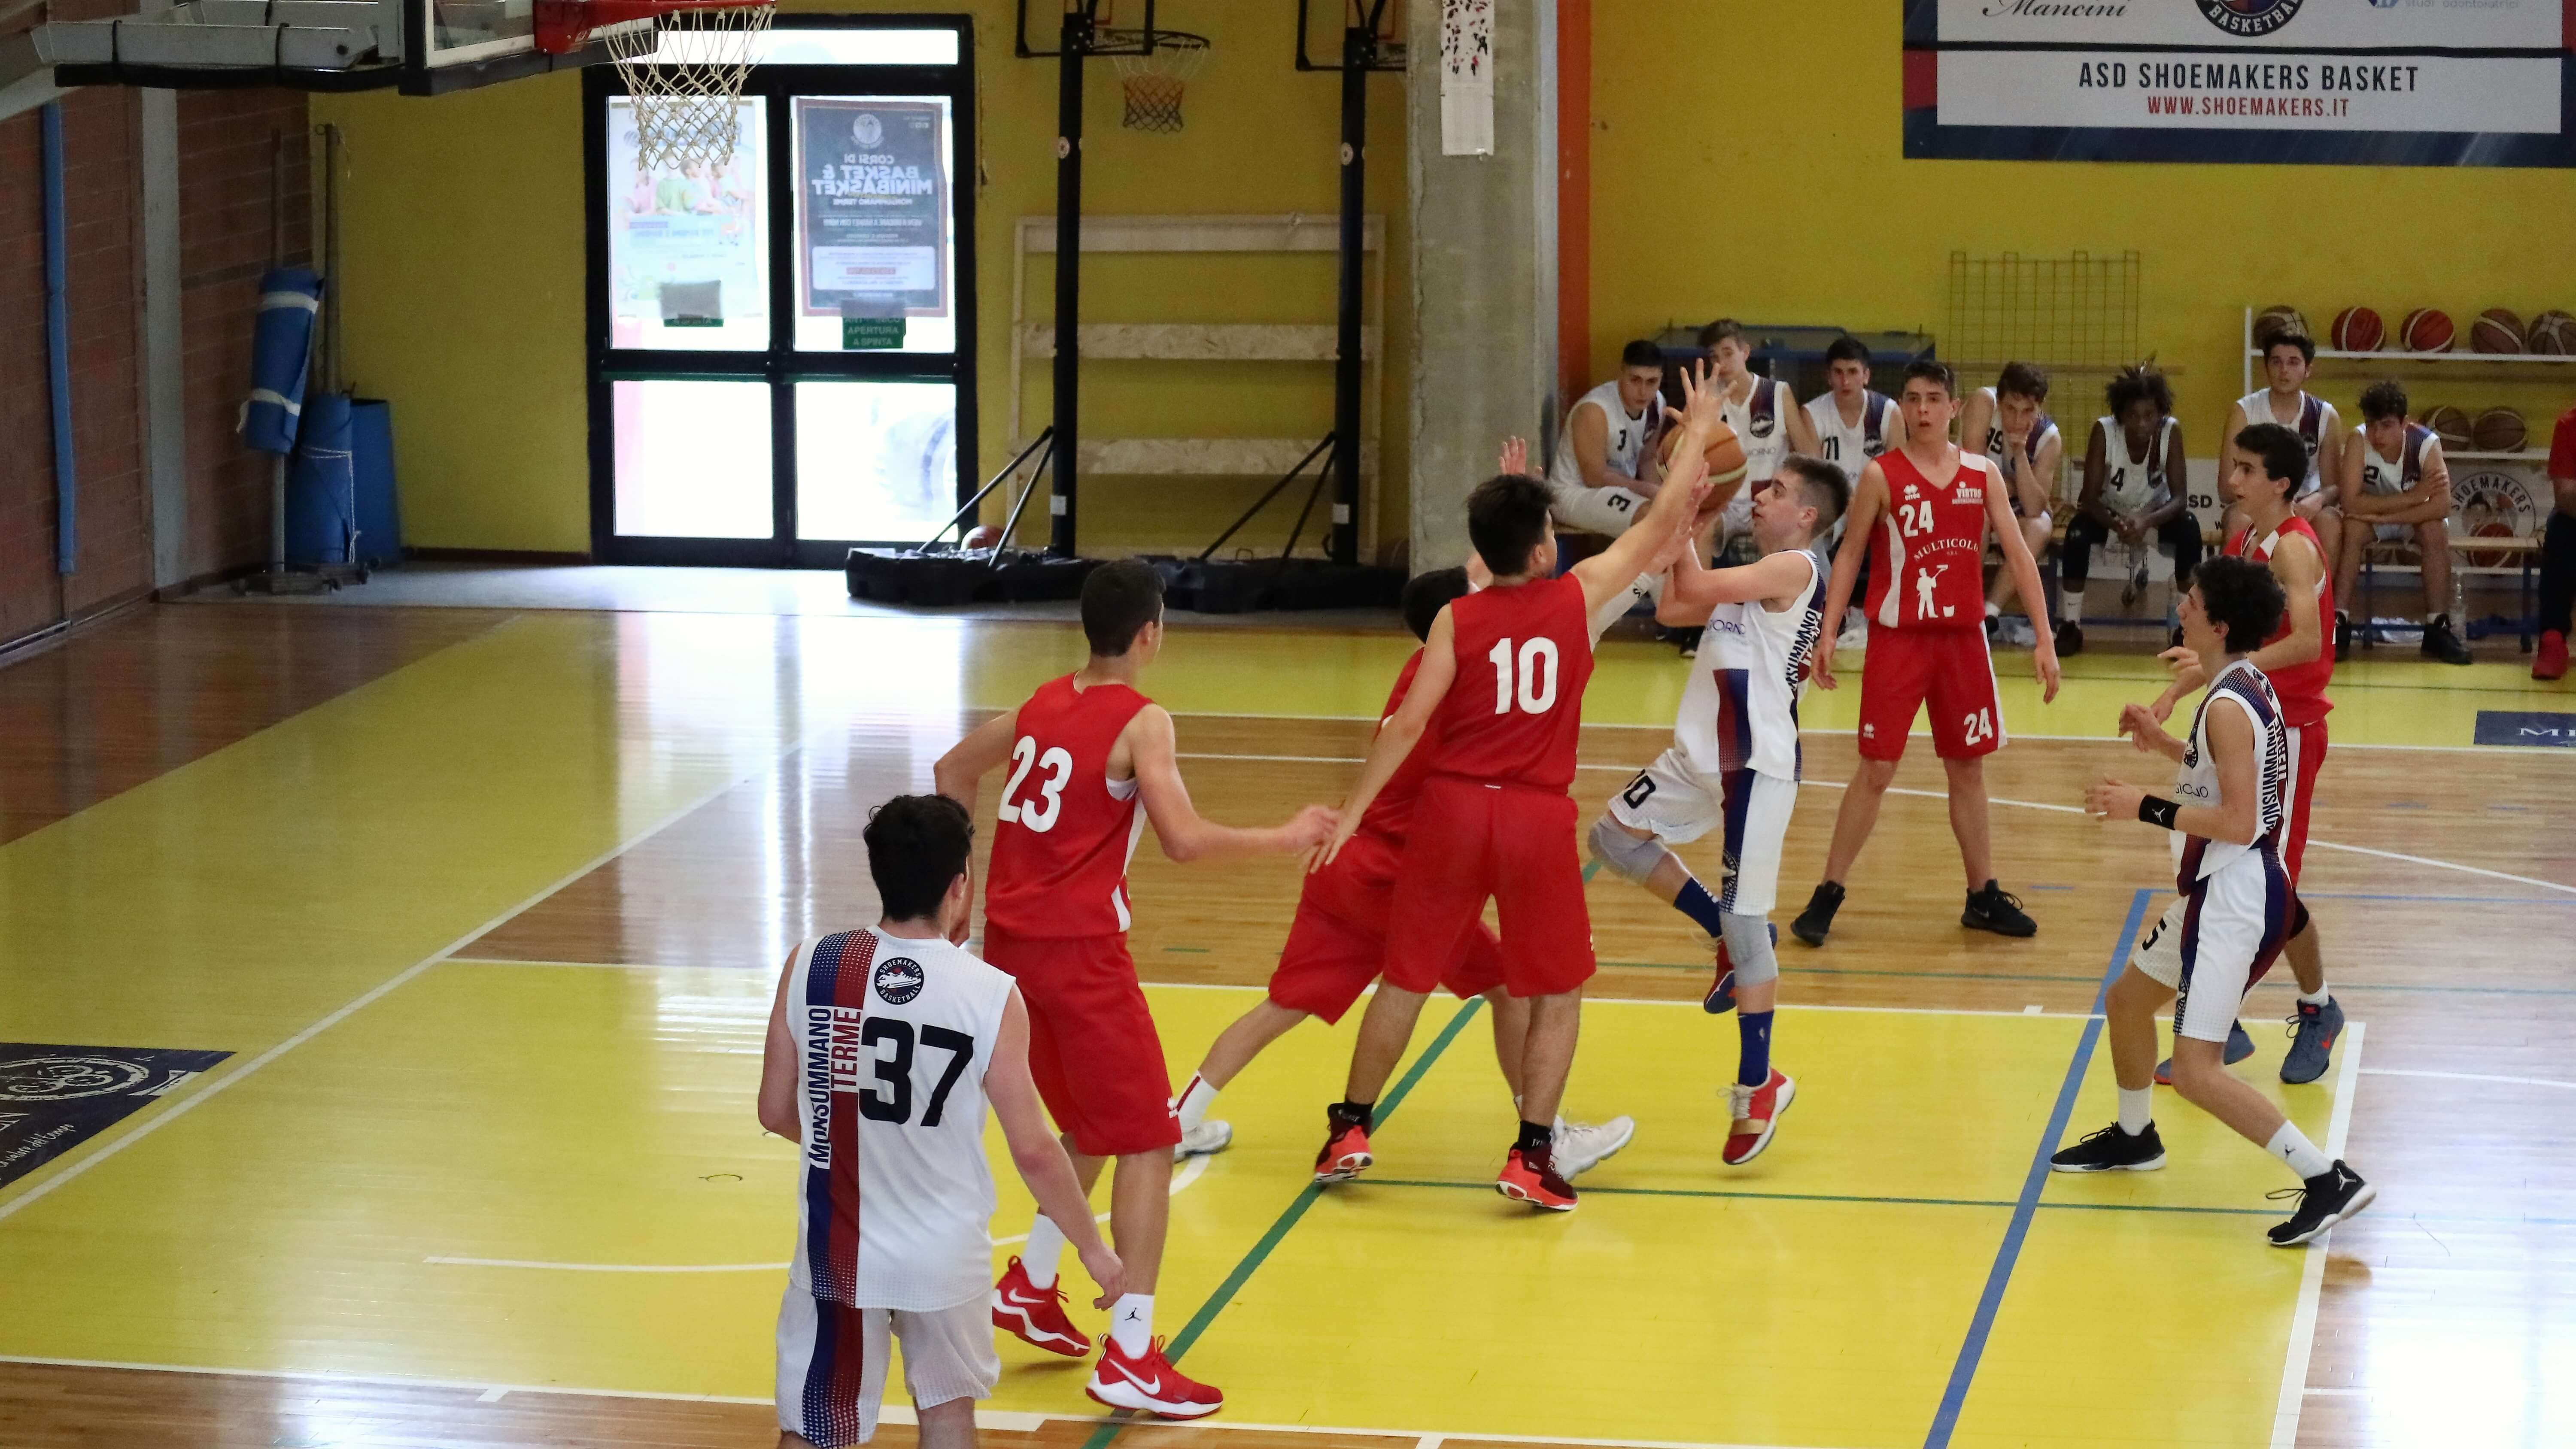 U16: Shoemakers in crescendo, battuta anche Certaldo